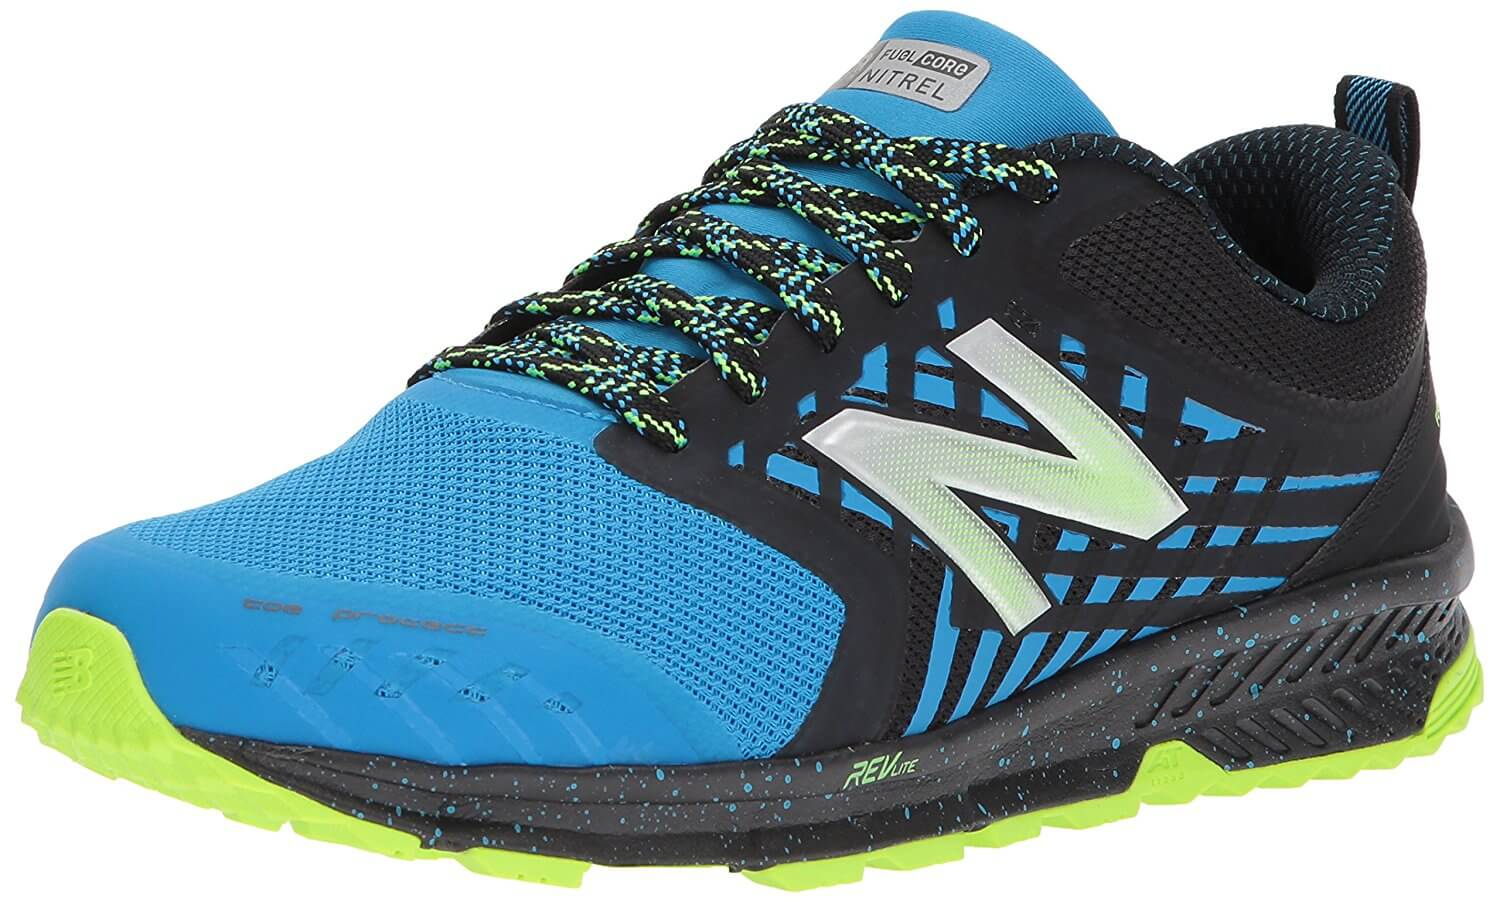 New Balance Fuelcore Nitrel Fully